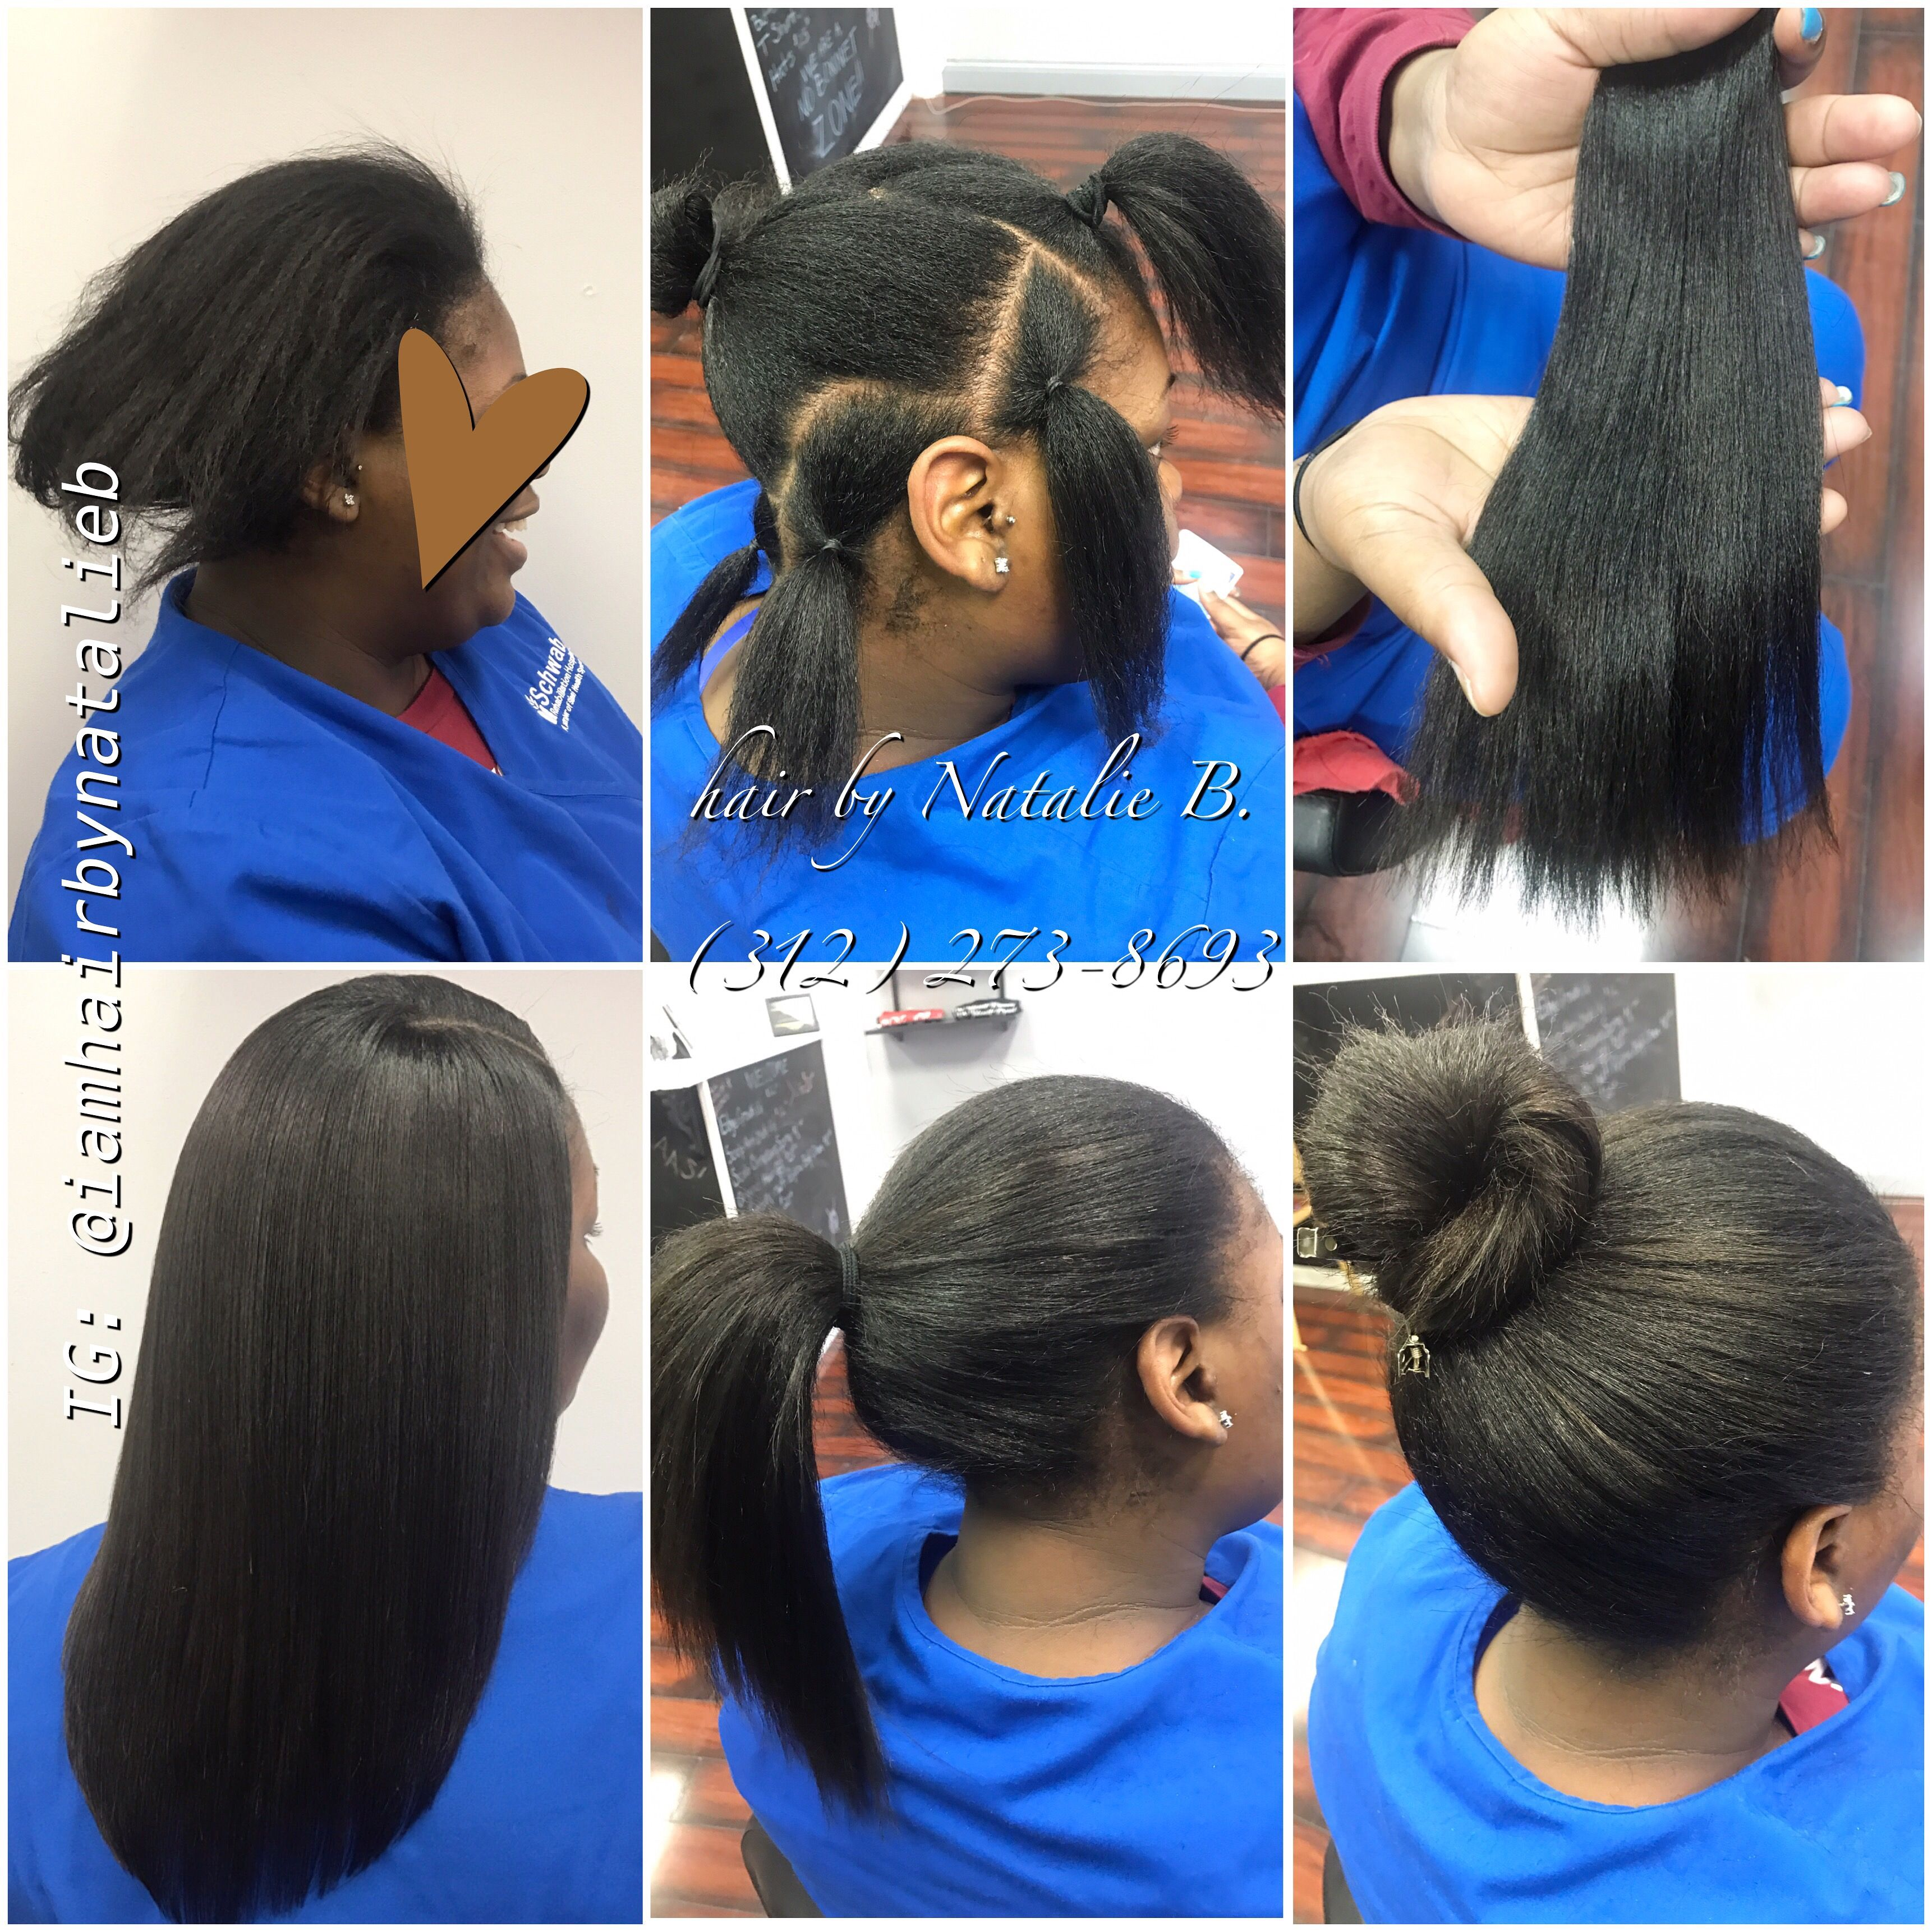 Now This Is A Natural Looking Versatile Sew In Perfect Pony Sew In By Natalie B Call Or Weave Hairstyles Natural Hair Styles Natural Hair Extensions